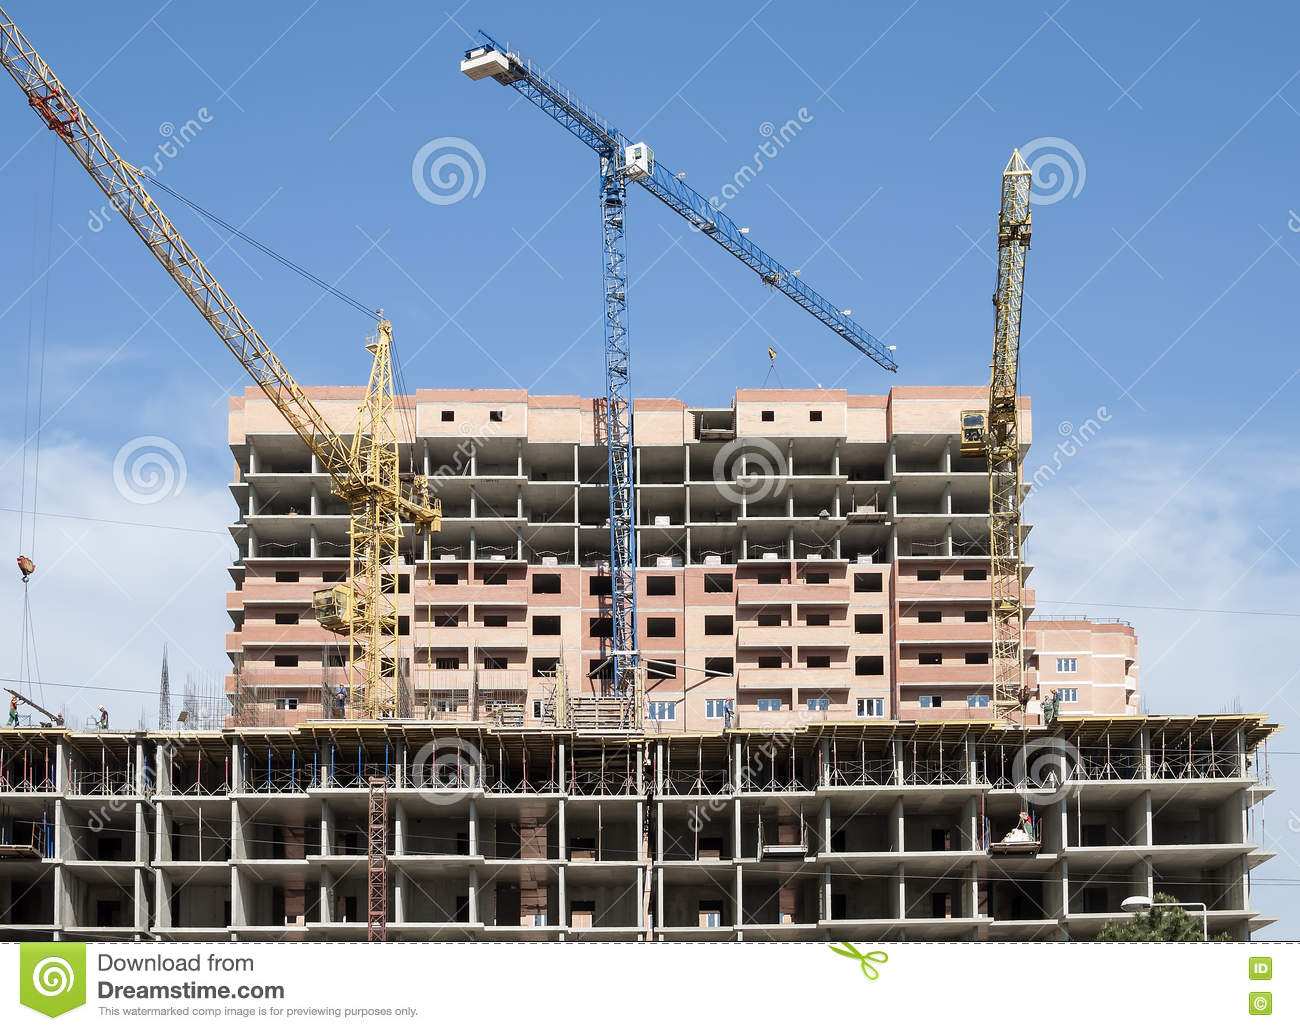 Stages of construction excavator digs foundation pit for Phases of building a house